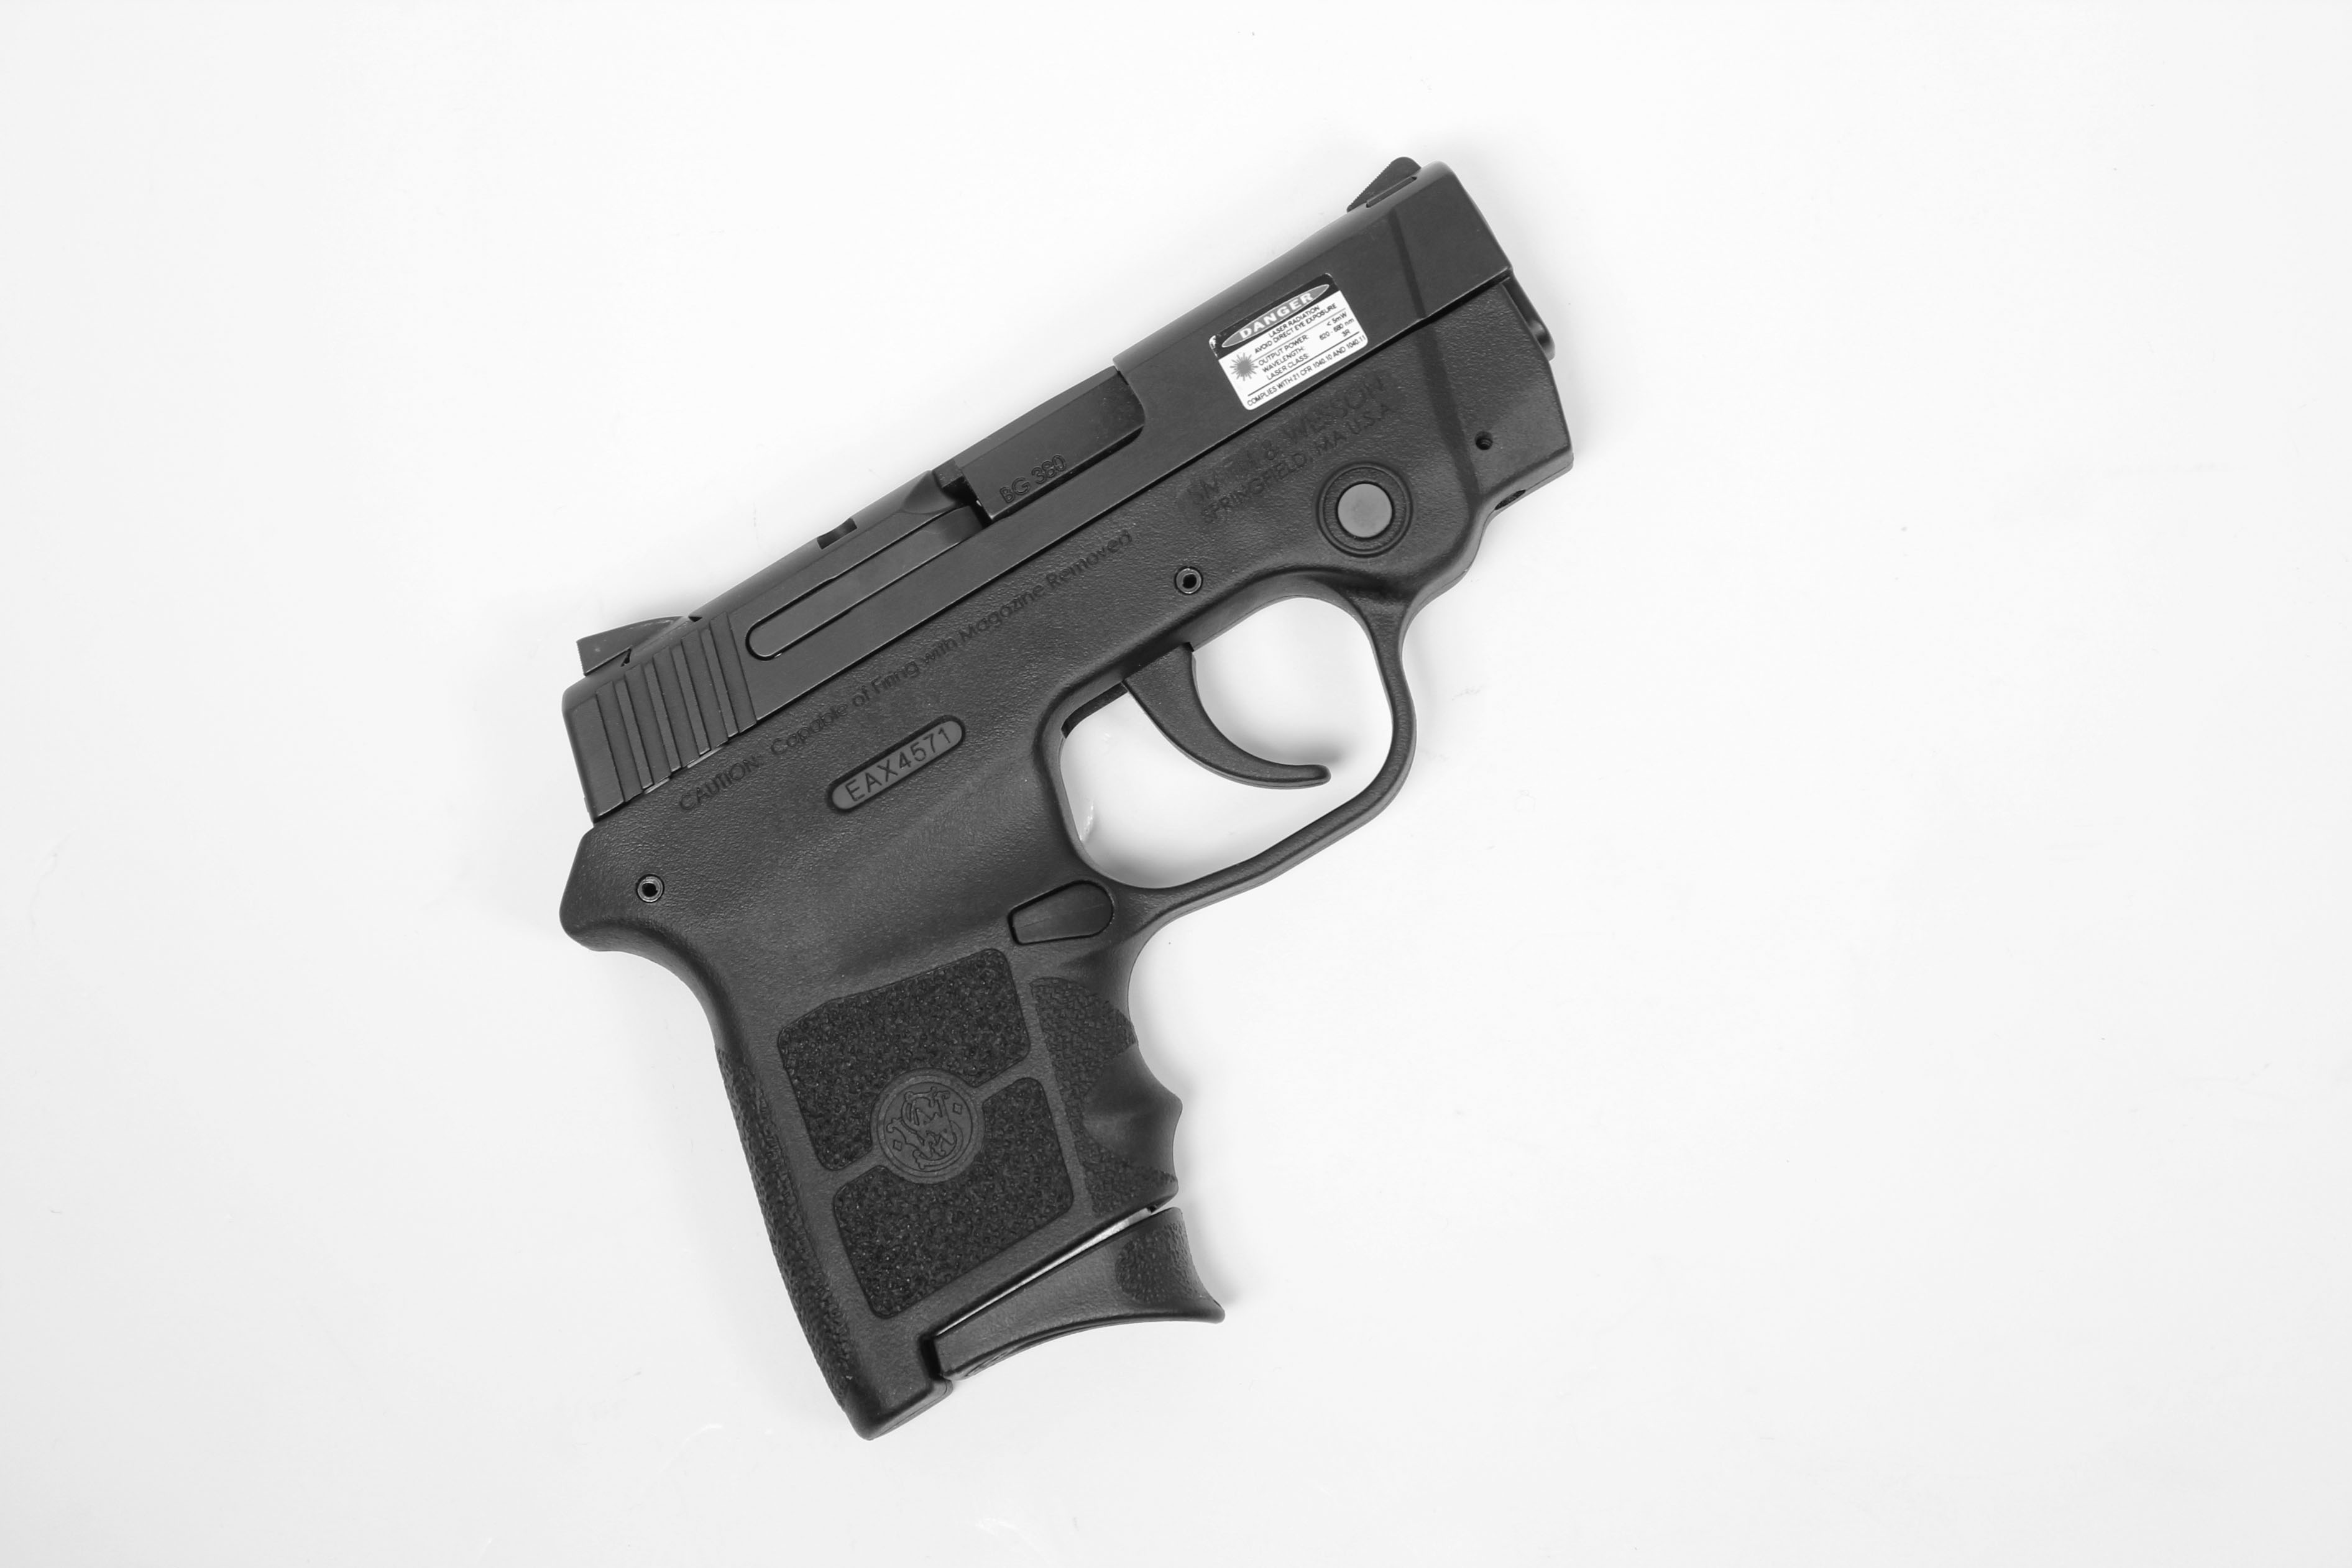 Smith and Wesson Bodyguard 380: Quick Assembly Tips